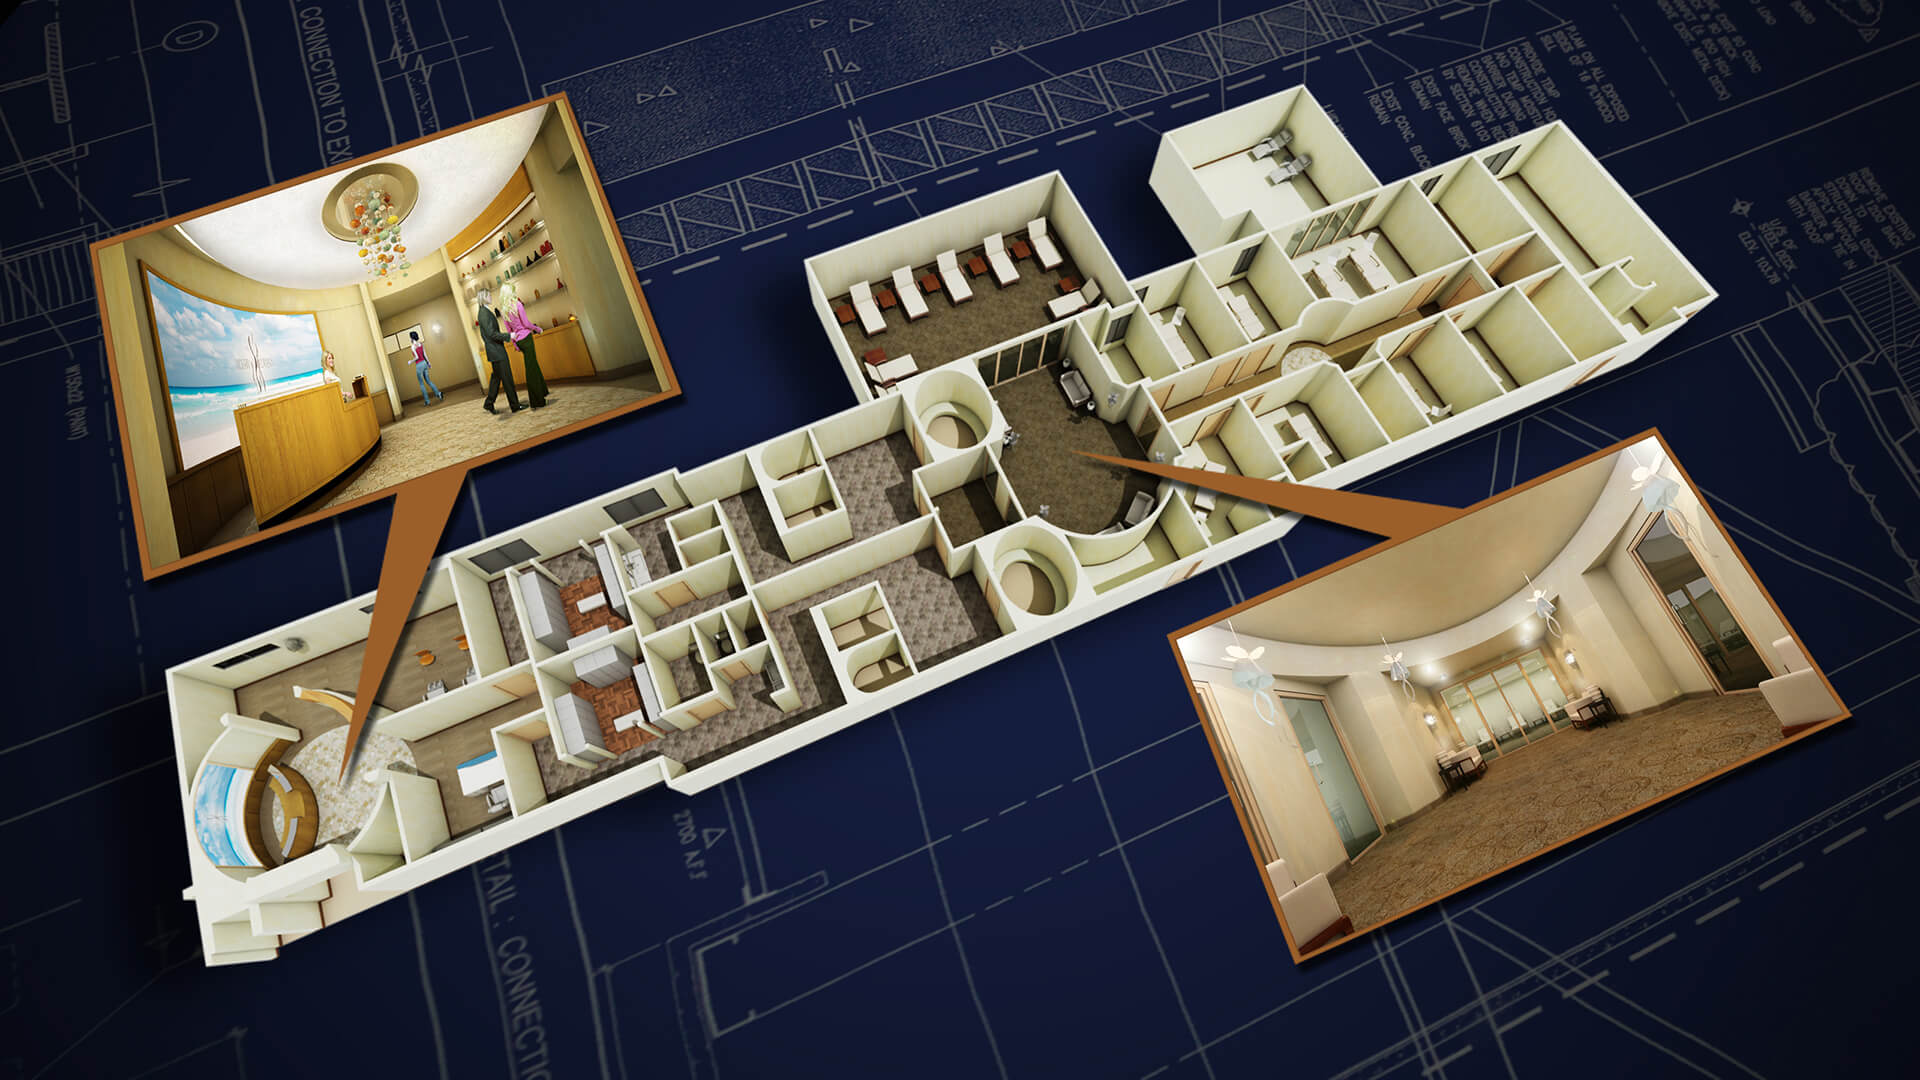 Ocean crest spa hilton resort ca 3d floor plan resort for 3d salon floor plans